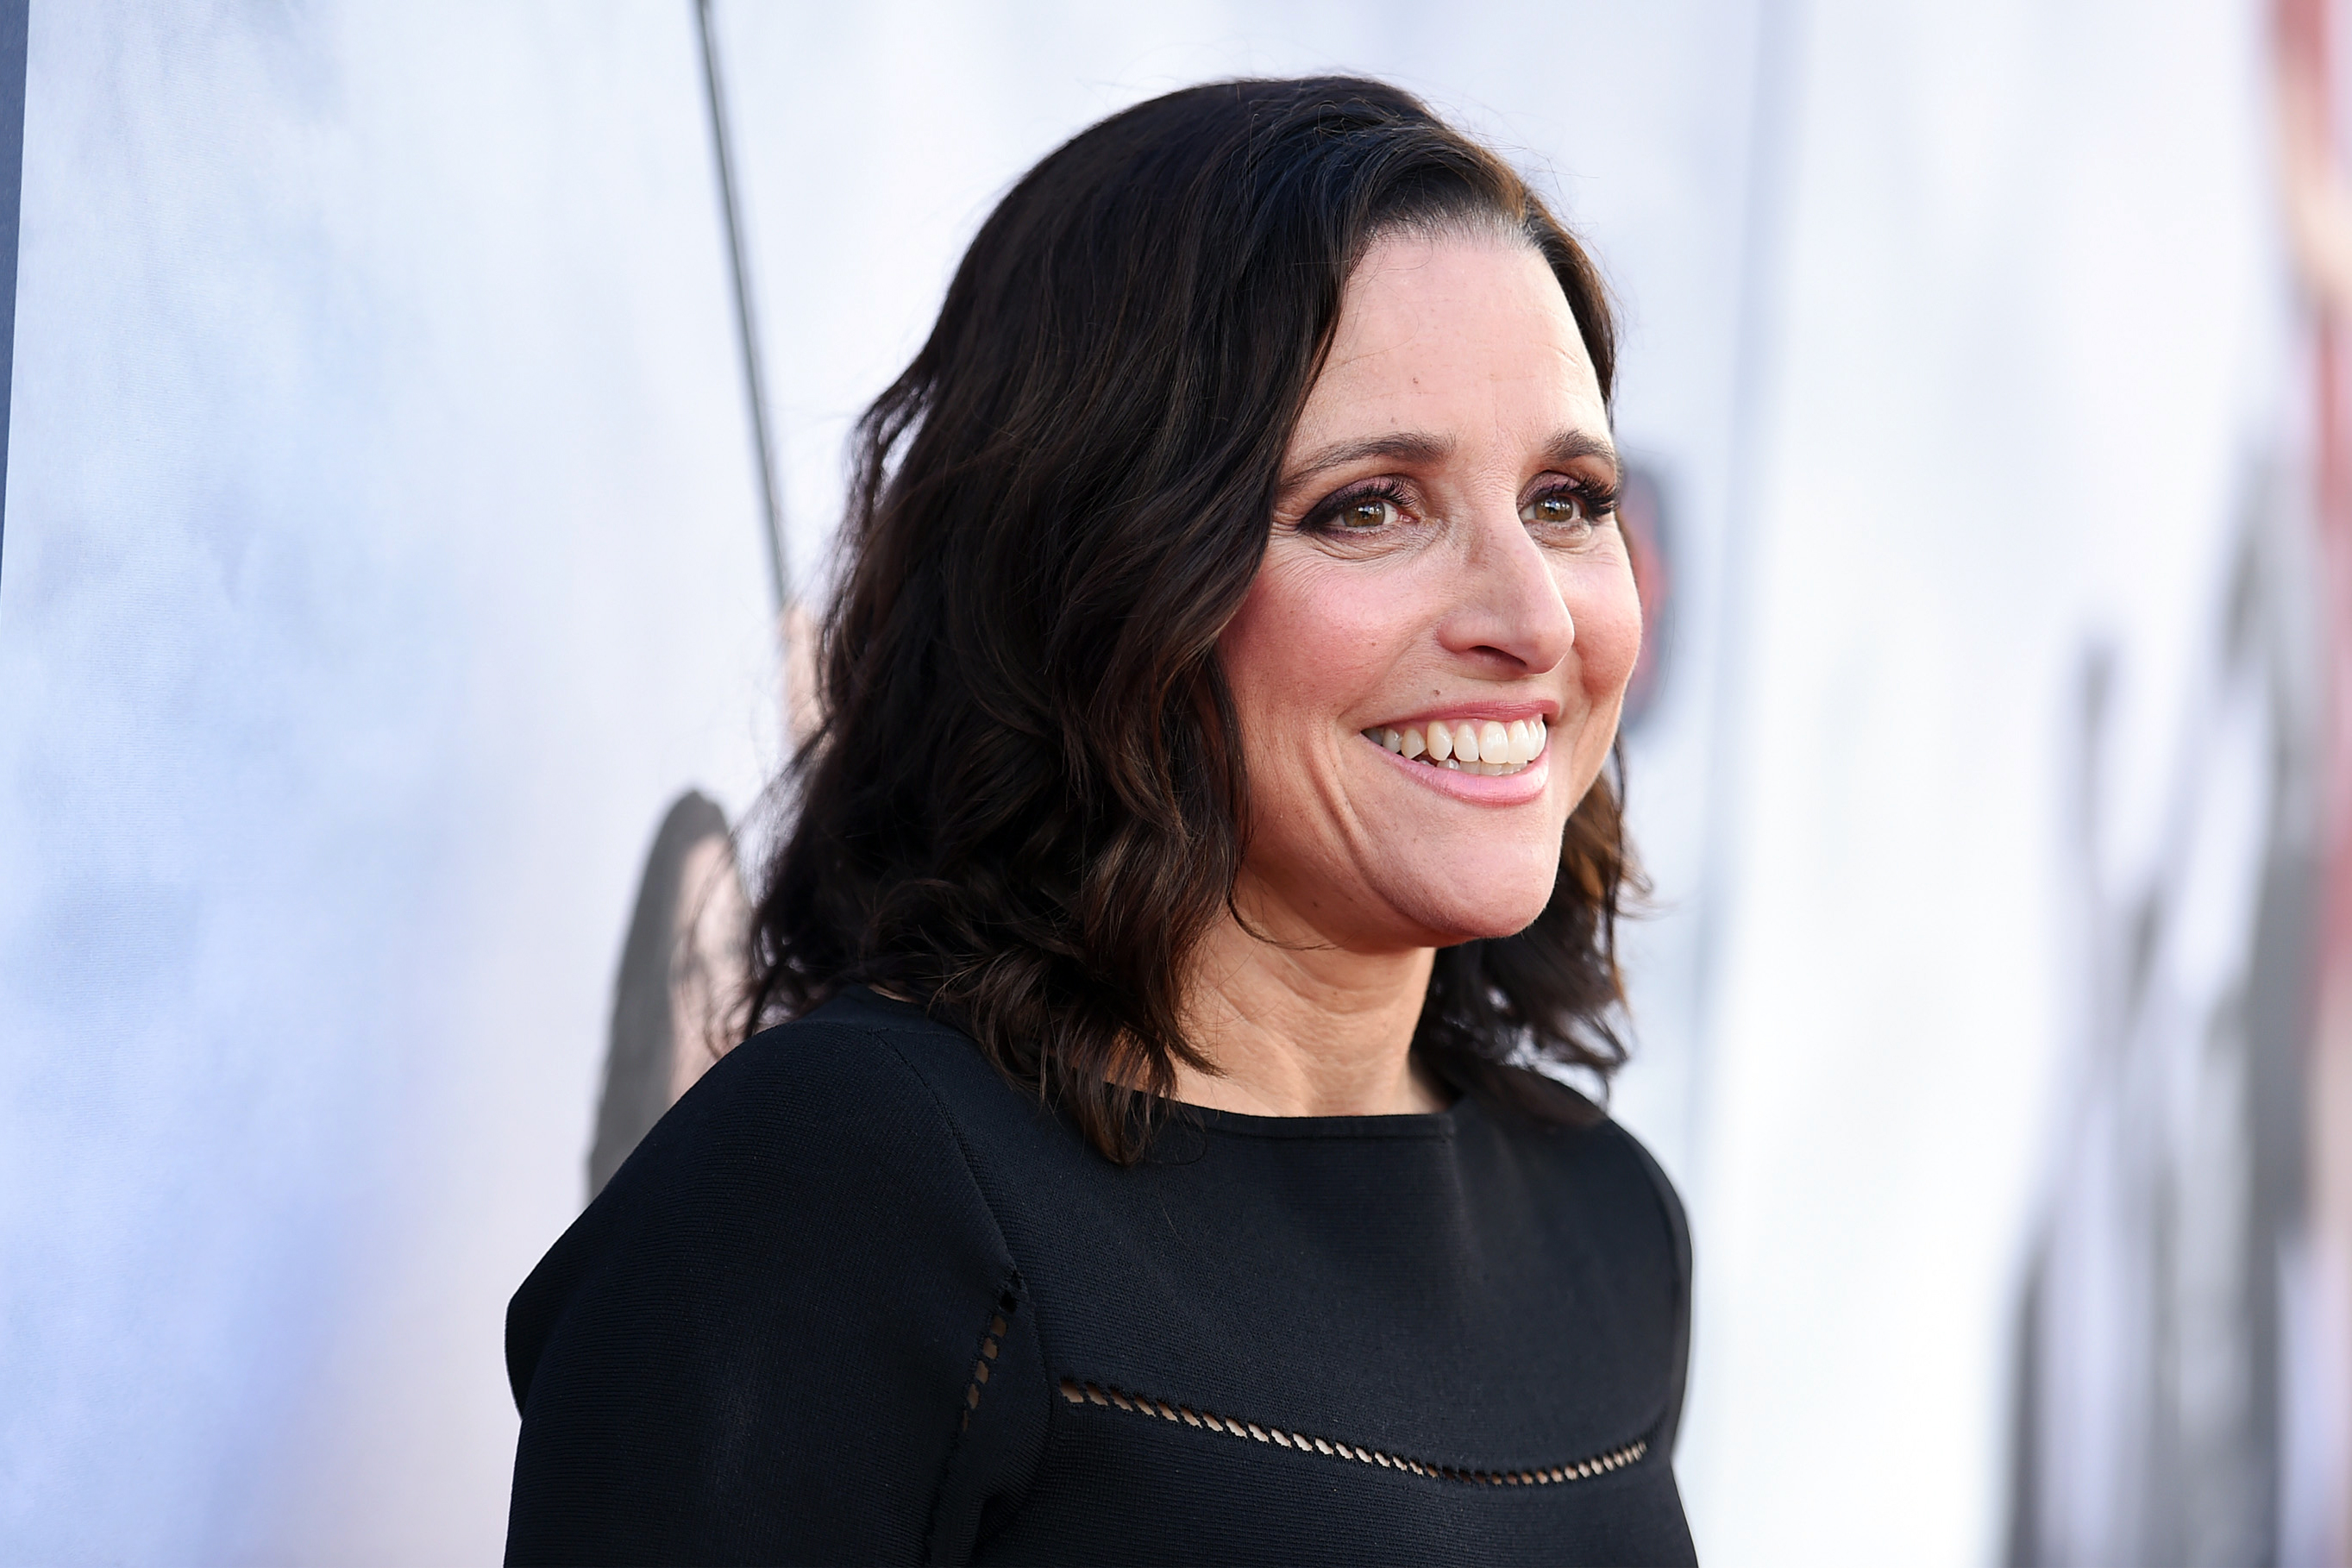 Forum on this topic: Jeanne Bowser, julia-louis-dreyfus/